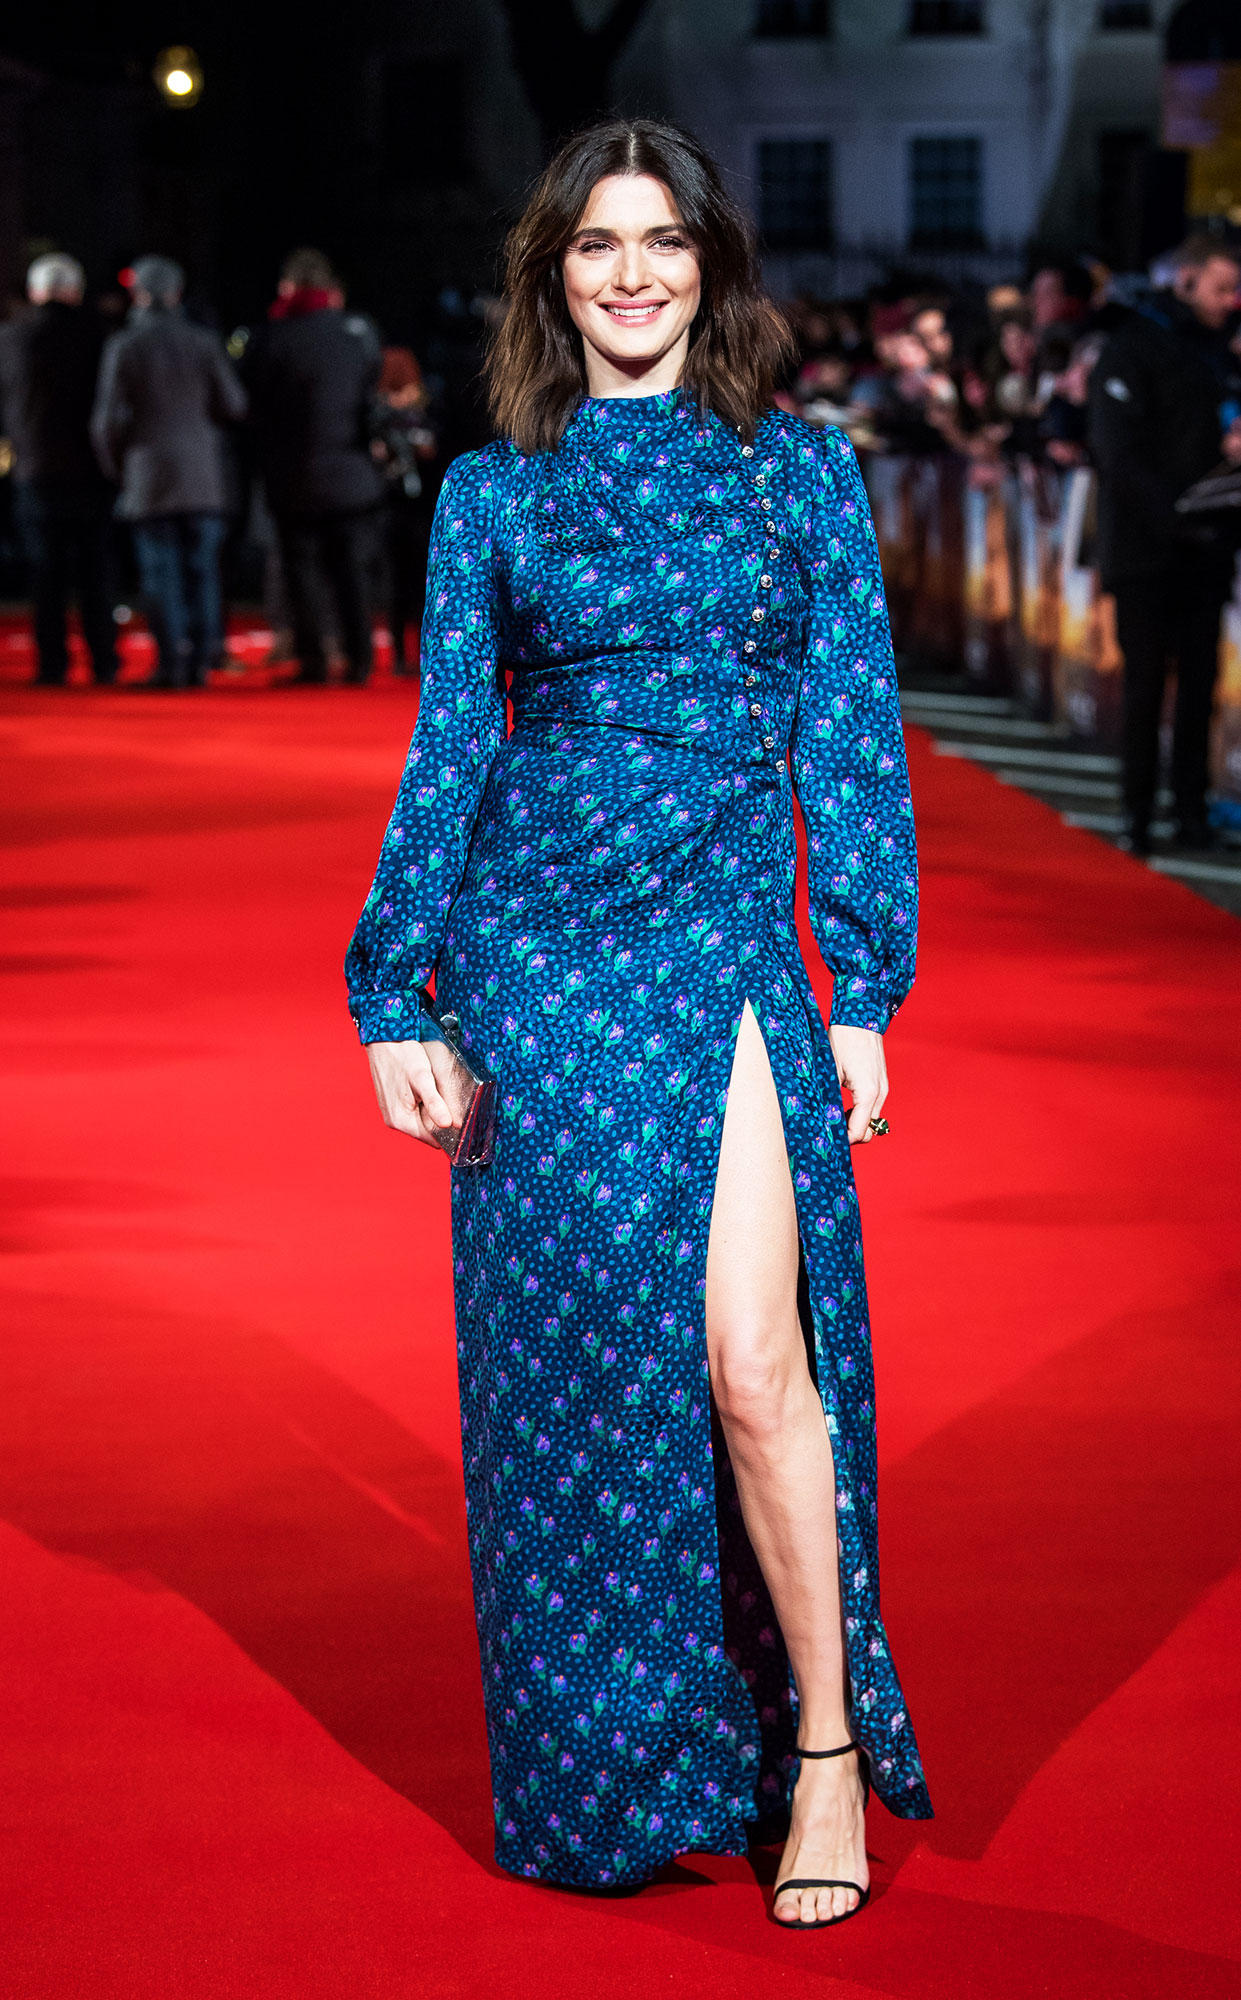 Happy Birthday, Rachel Weisz! See Her Hottest Red Carpet Looks - Rachel Weisz attends 'The Mercy' World Premiere at The Curzon Mayfair on February 6, 2018 in London, England.